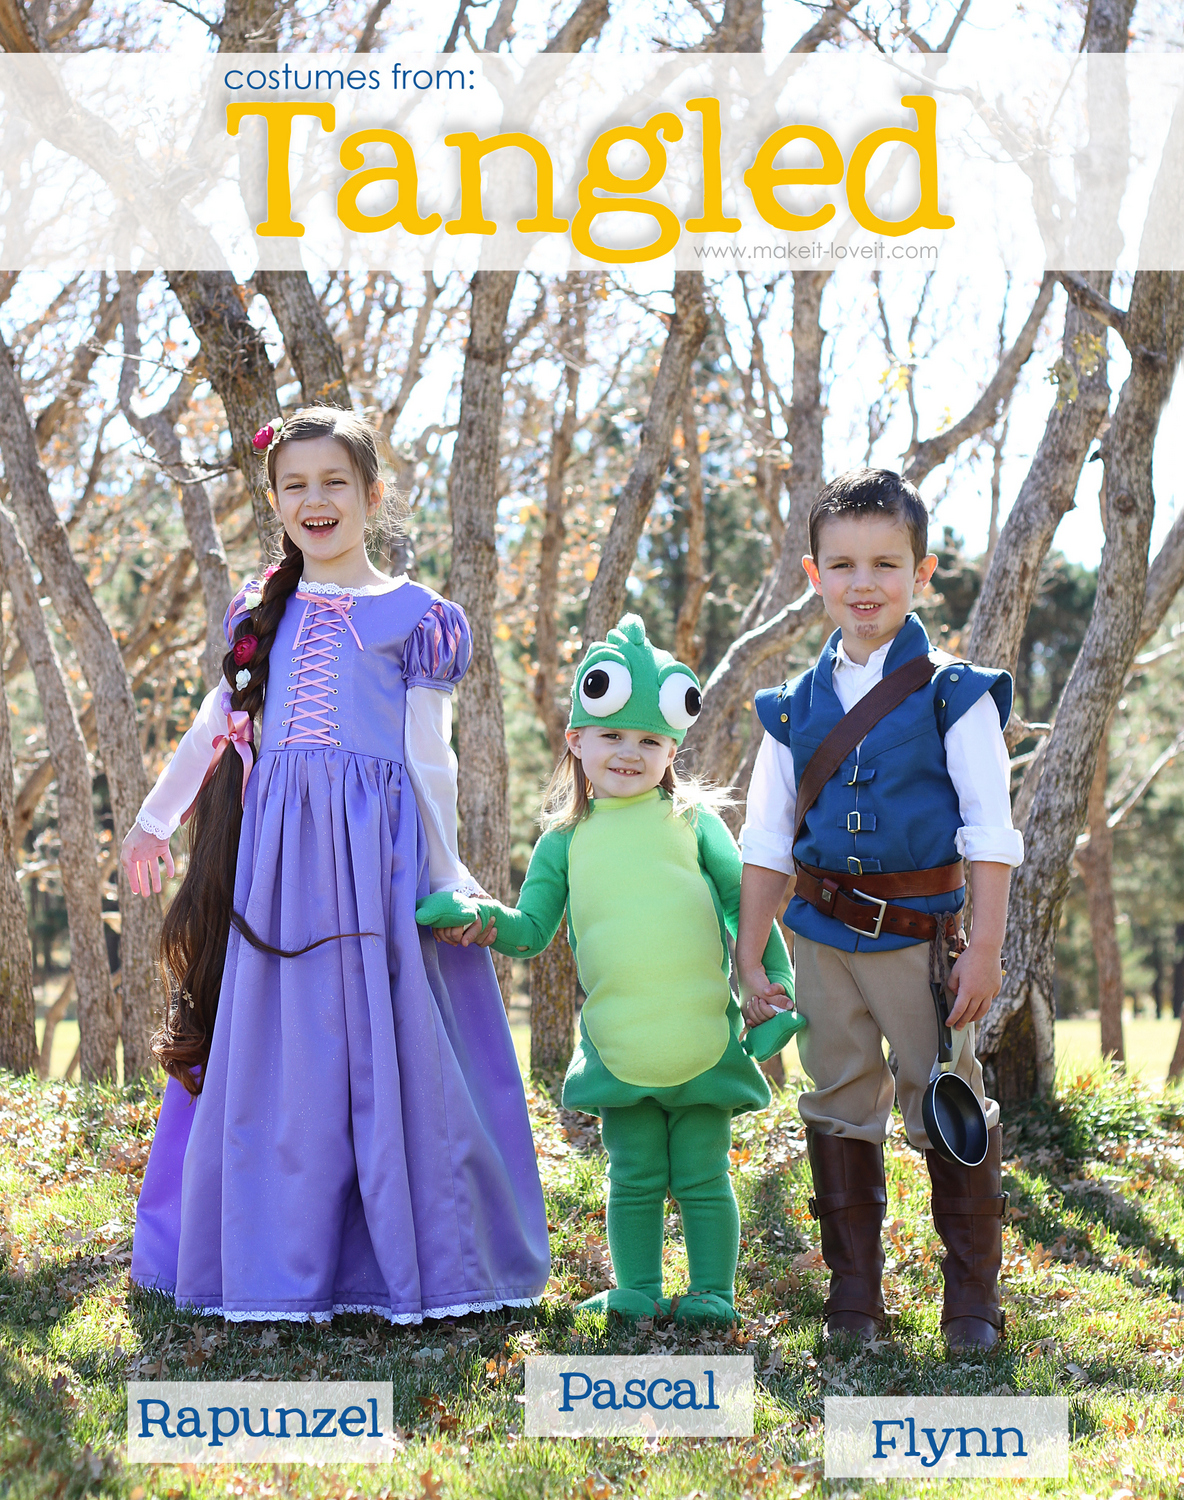 1 Tangled Costumes